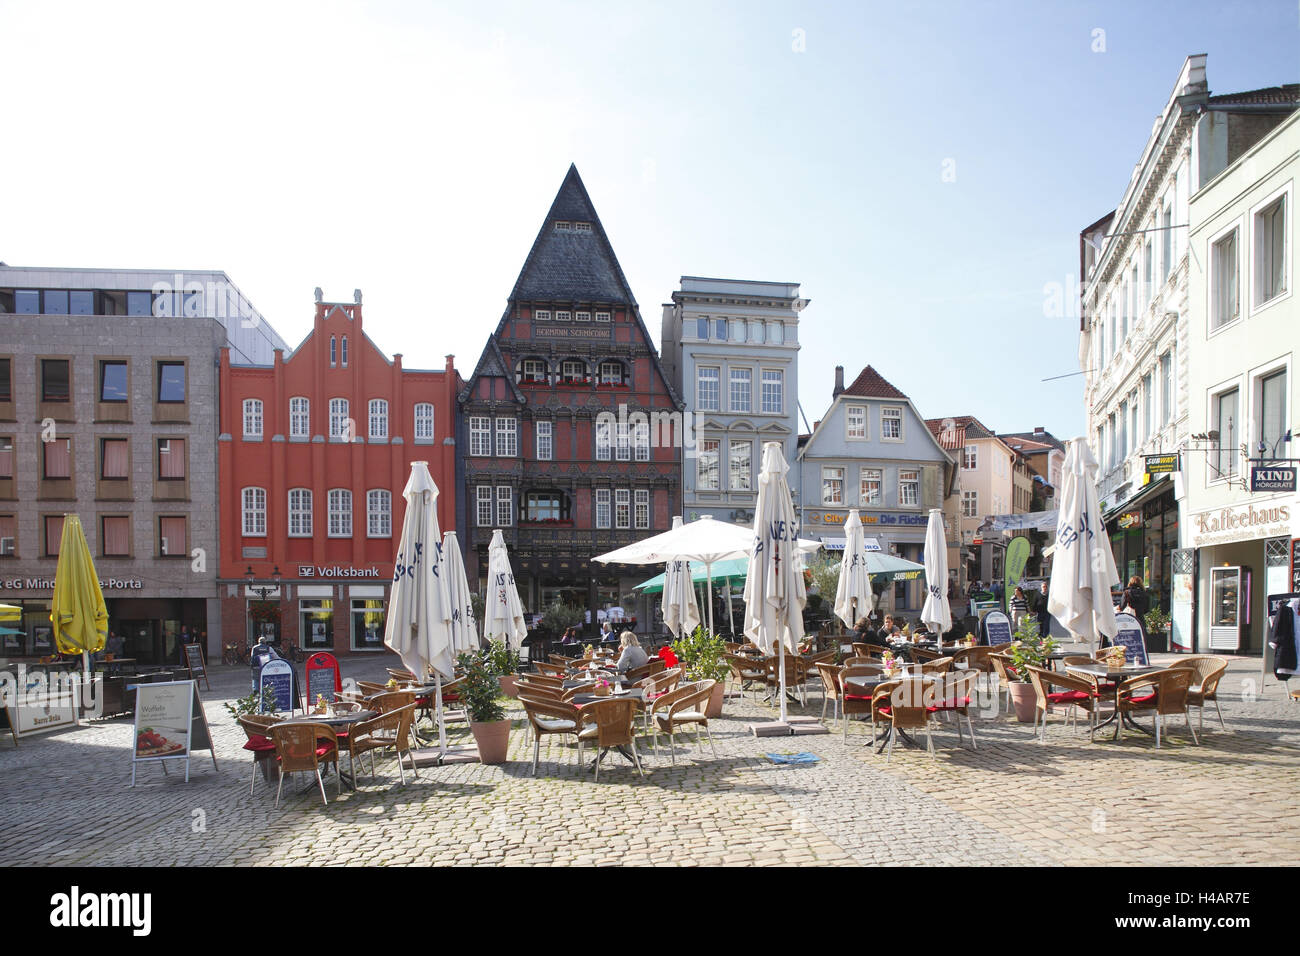 deutschland nordrhein westfalen minden marktplatz mit haus schmieding stockfoto bild. Black Bedroom Furniture Sets. Home Design Ideas